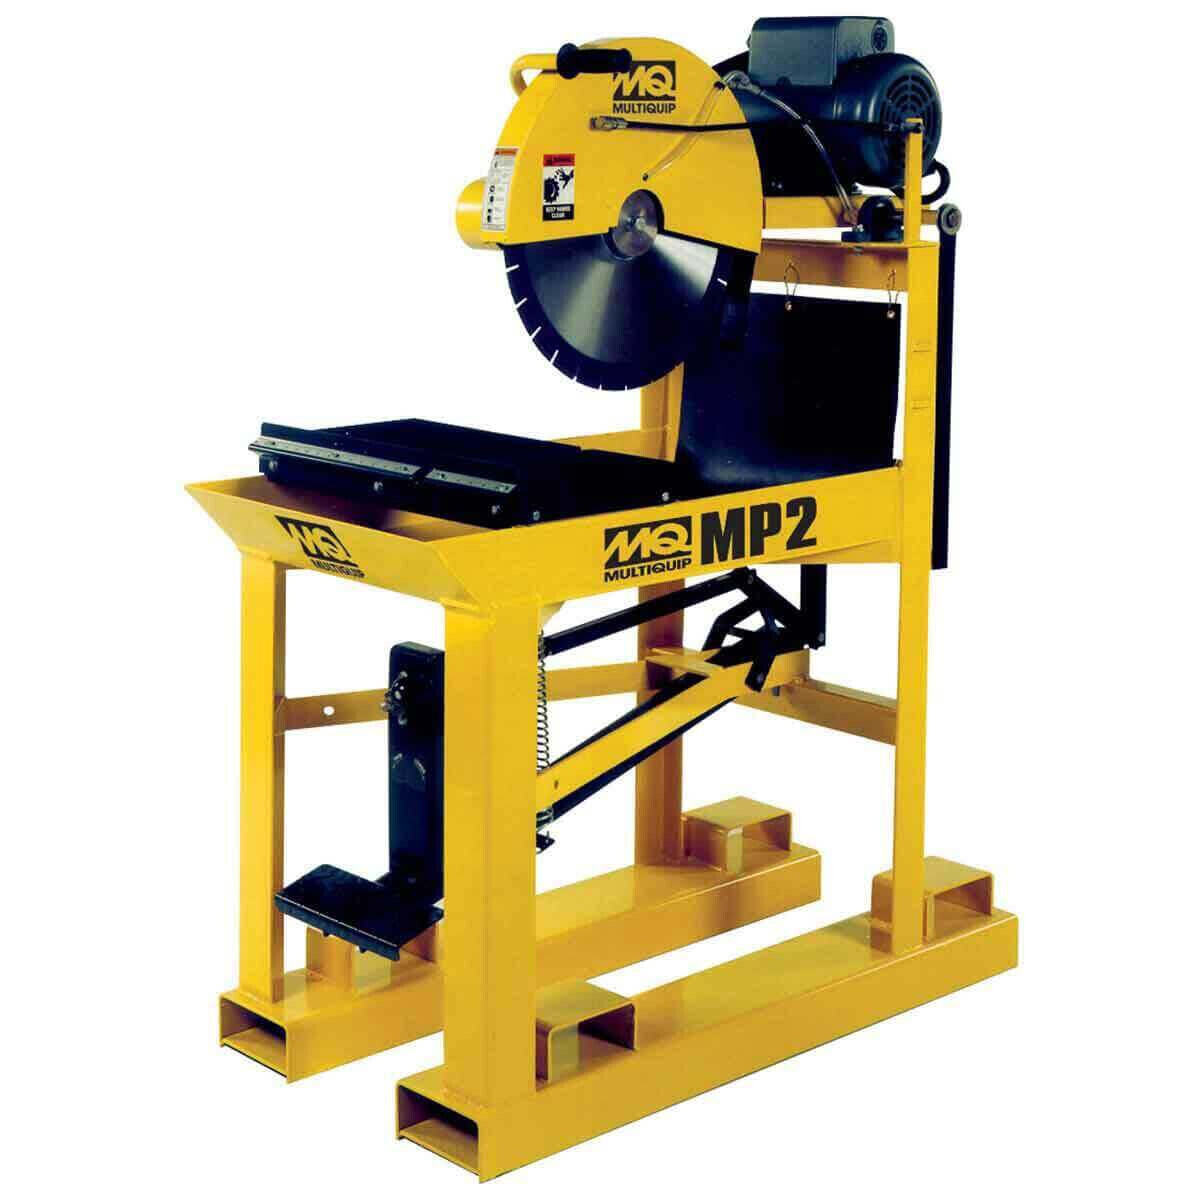 Multiquip MasonPro 2 Electric Masonry Block Saw